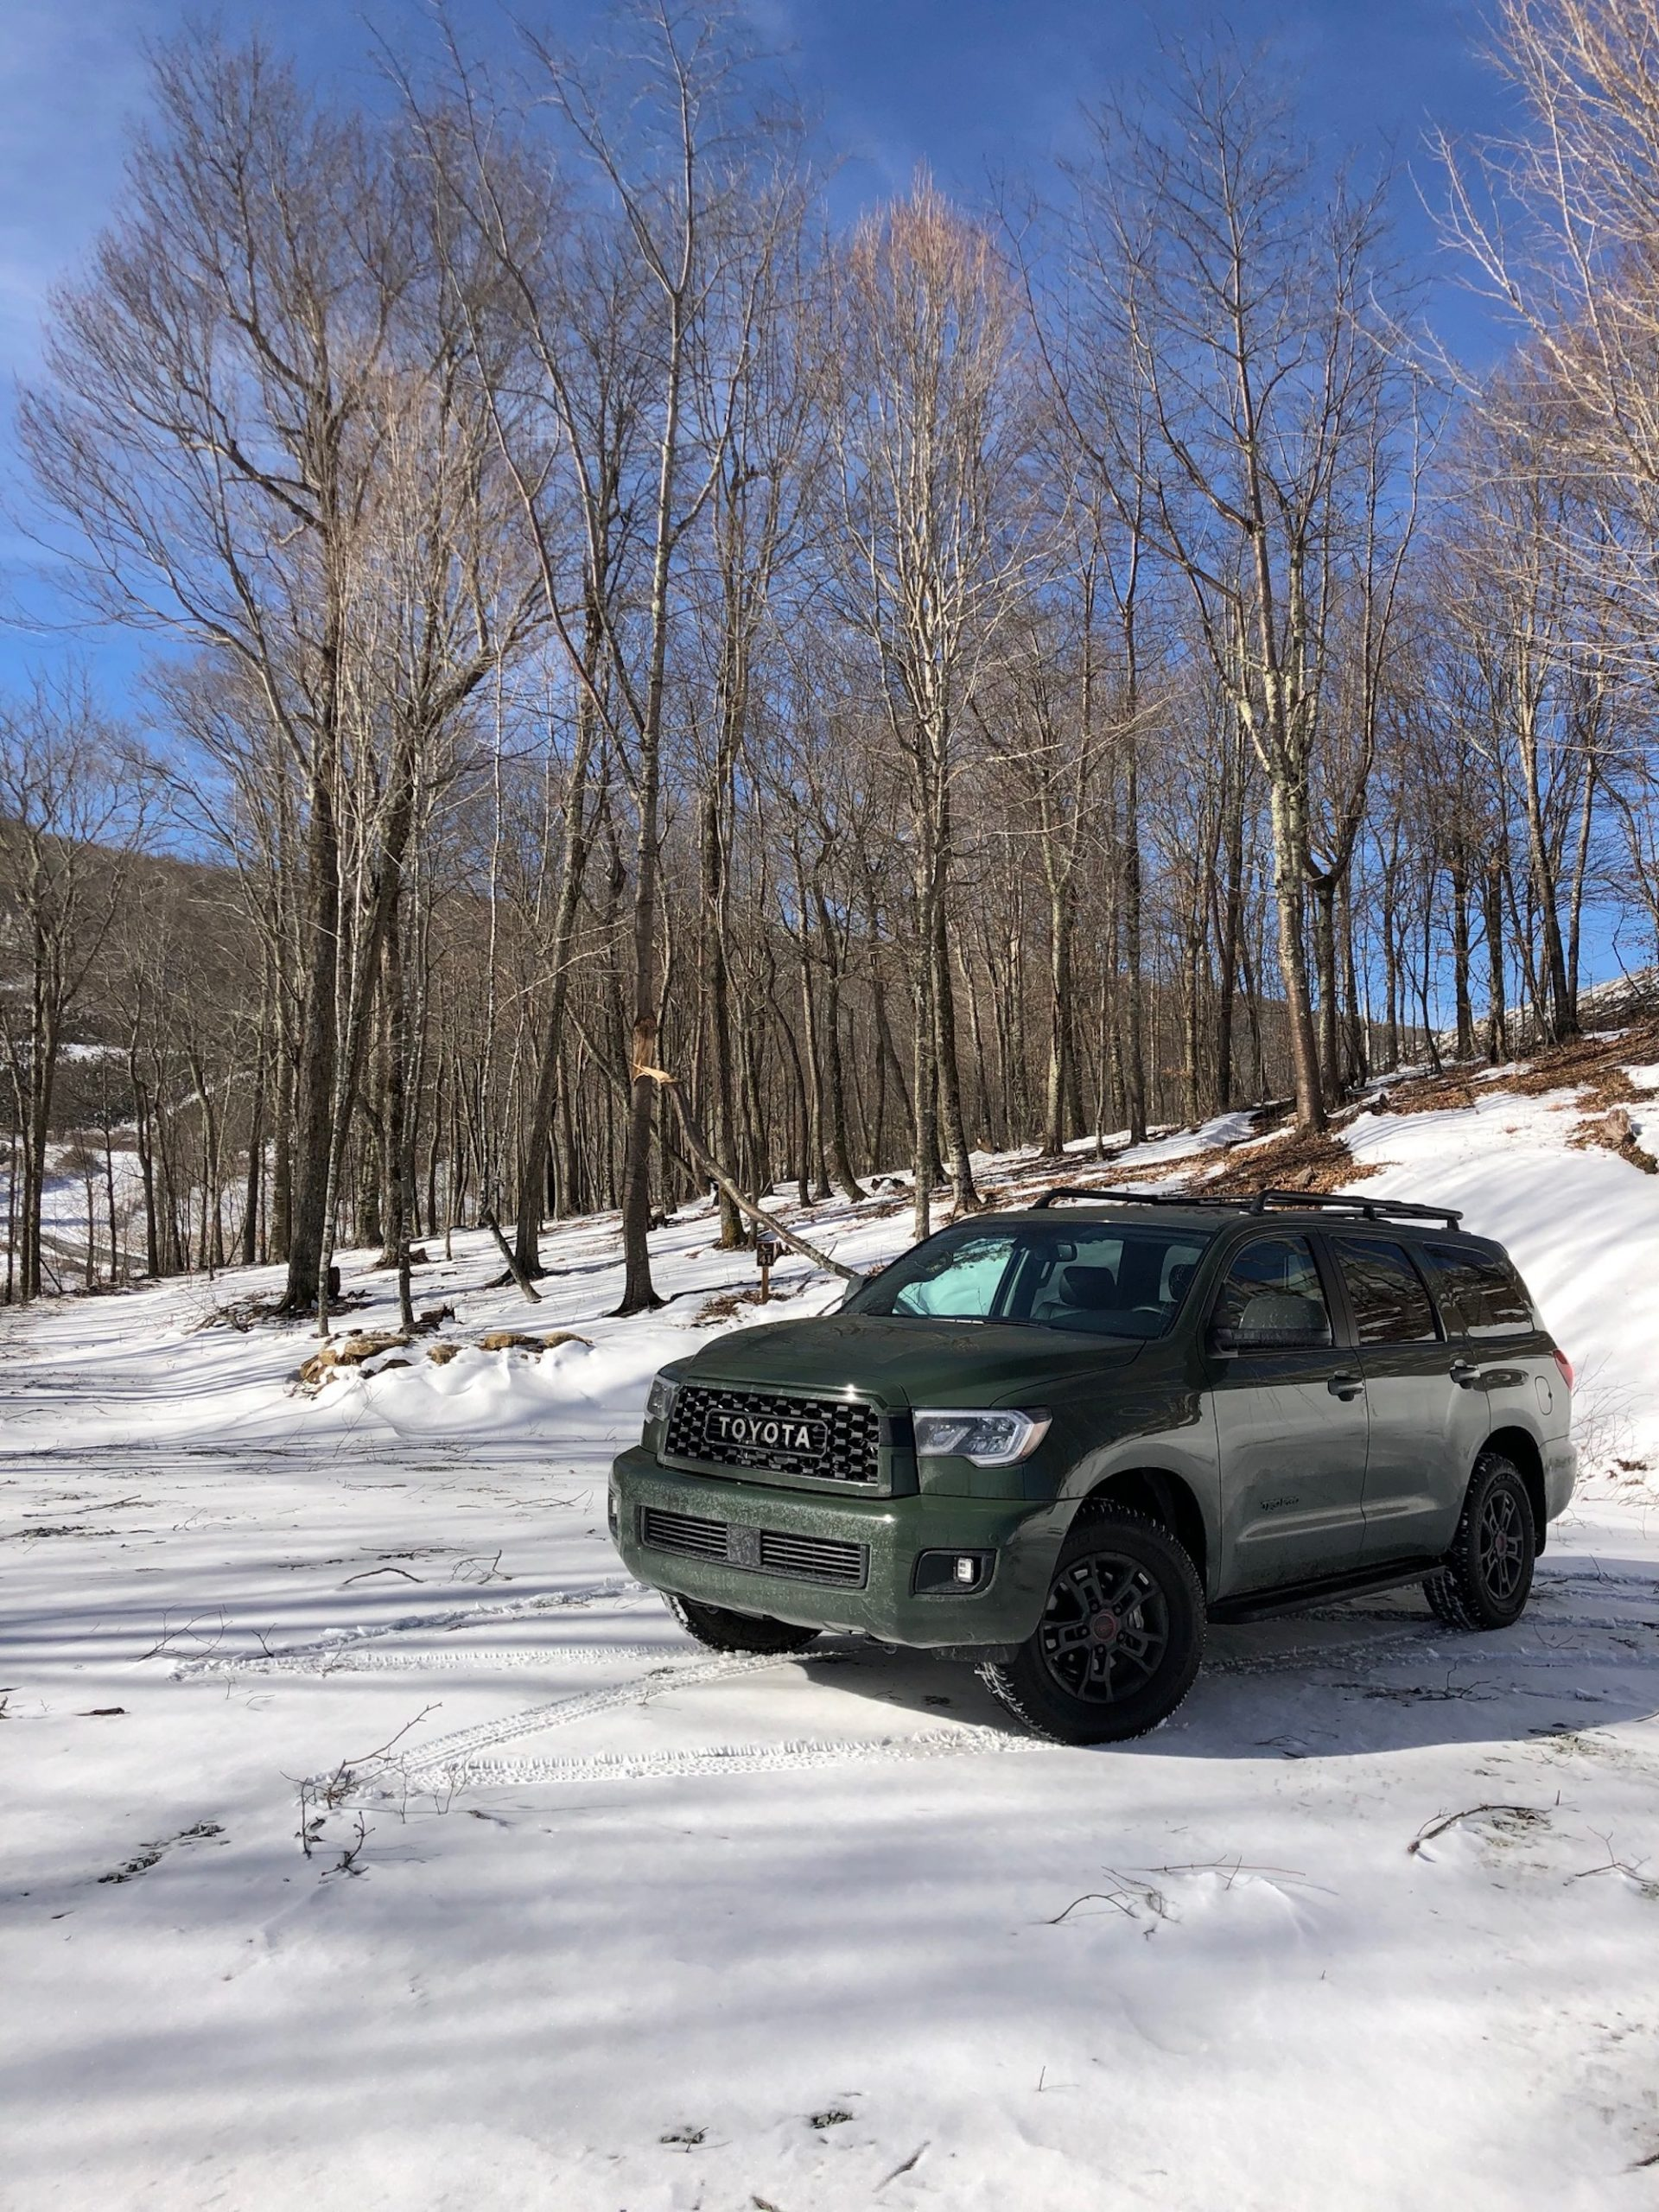 The army green 2020 Toyota Sequoia TRD Pro in the snow